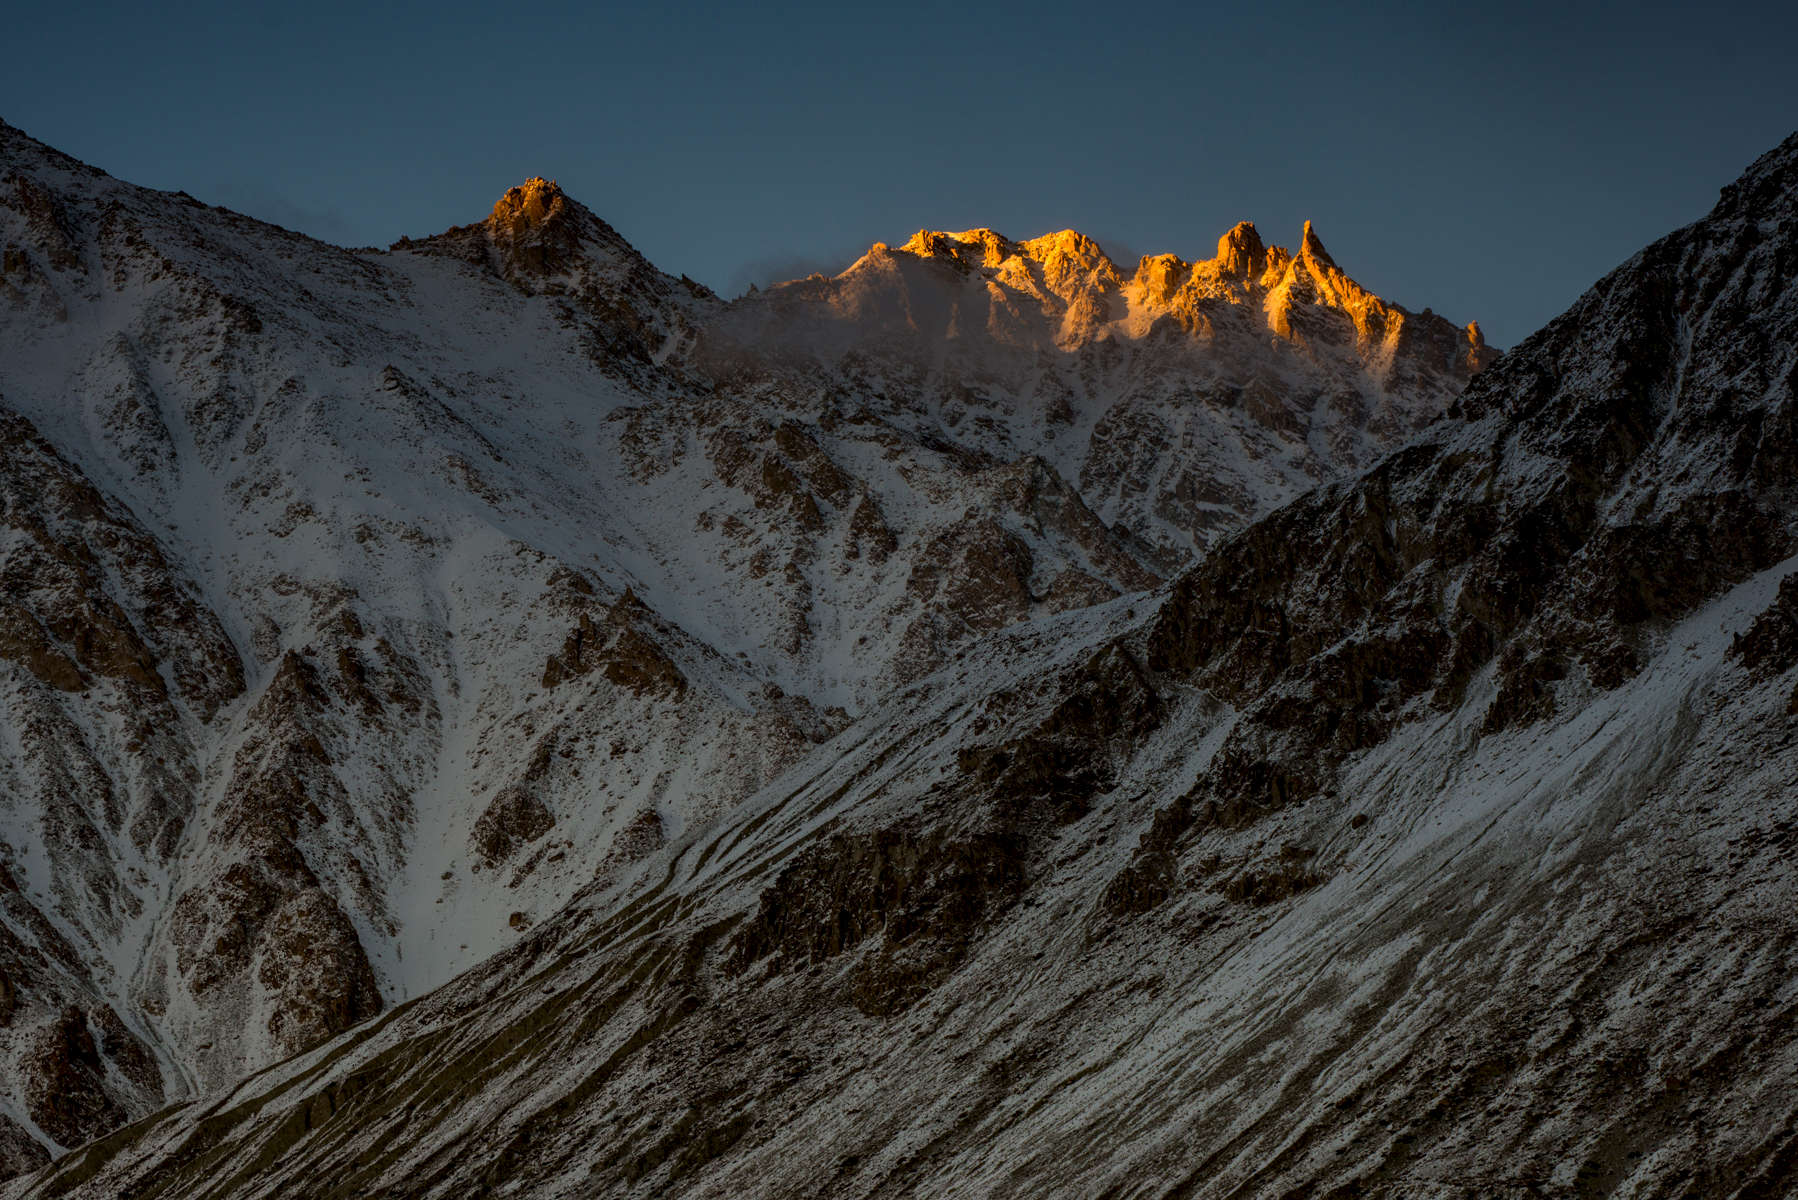 Alpenglow in the Karakoram, Ladakh